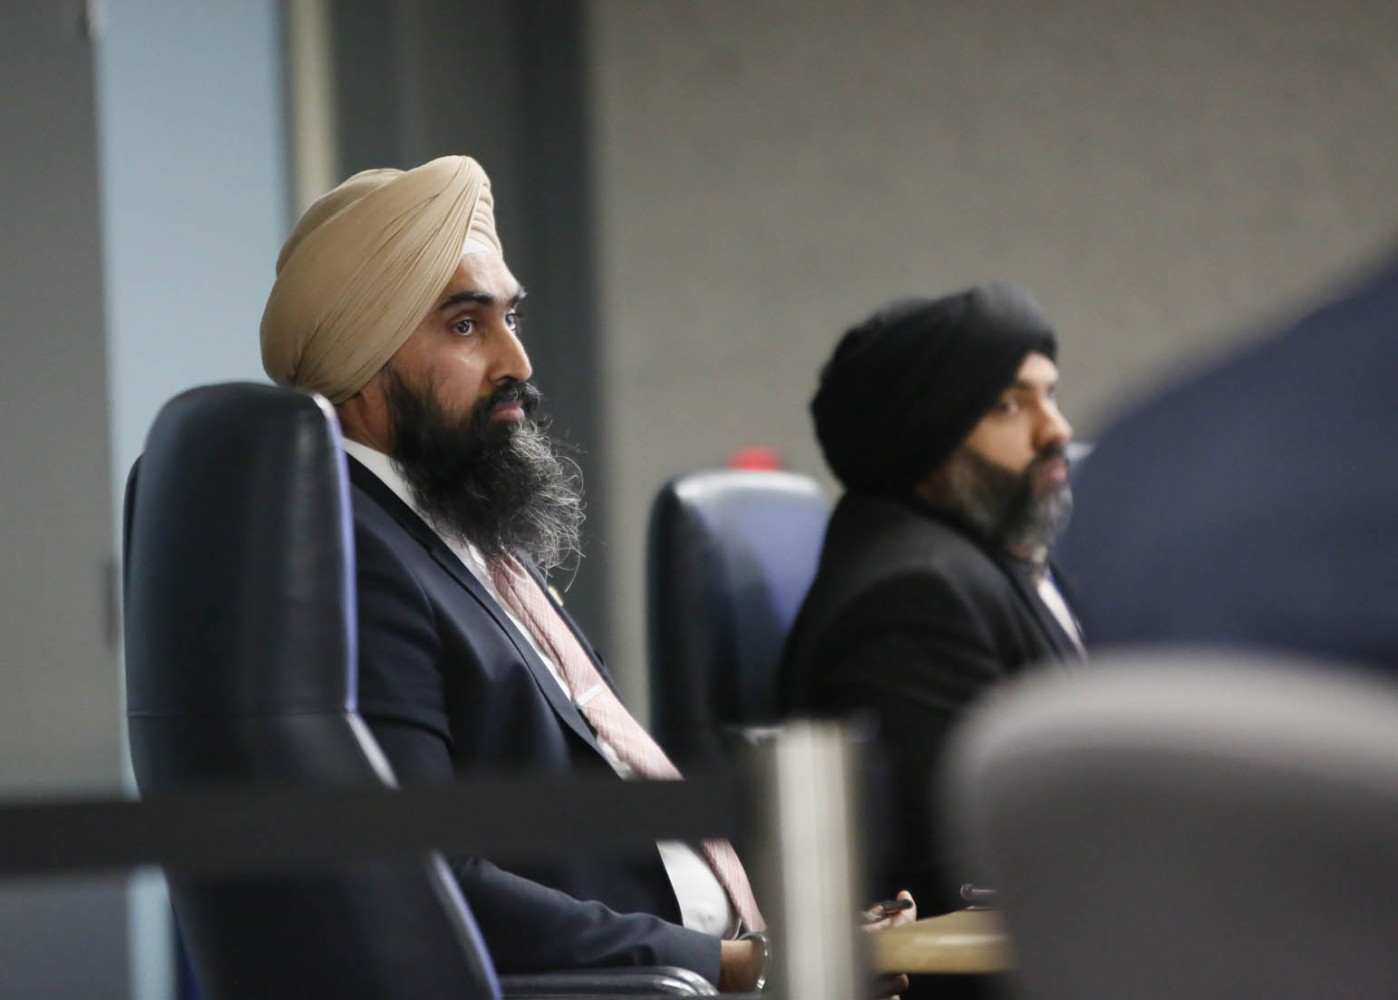 Following abysmal response rates to equity survey, Brampton council calls for a deeper look